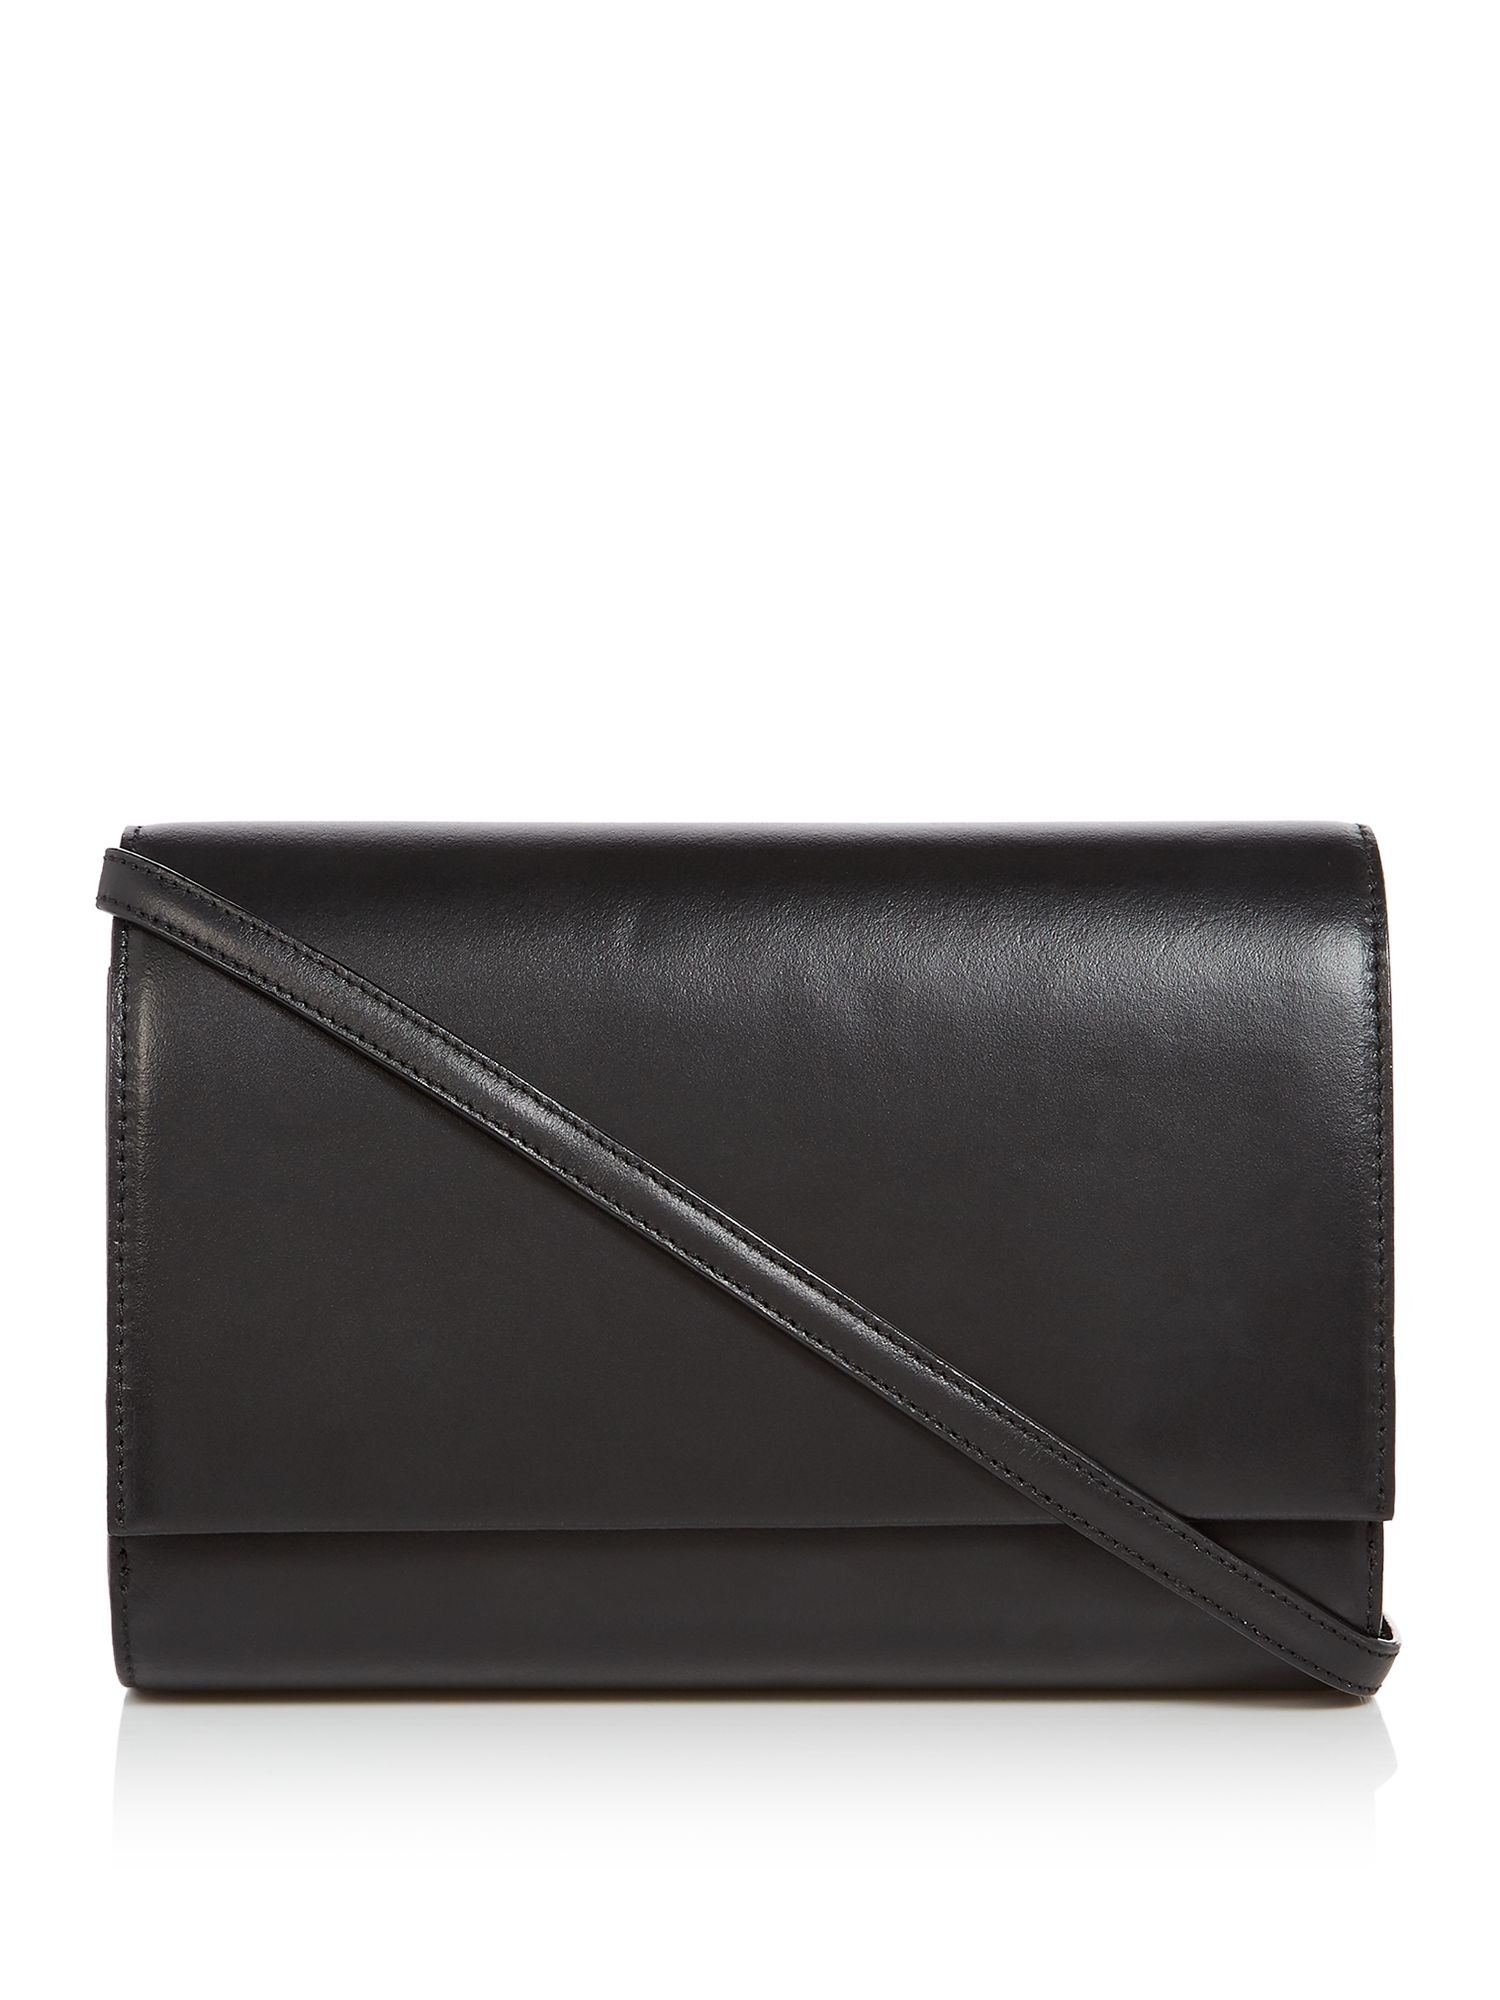 Linea Adele Leather Shoulder Bag, Black